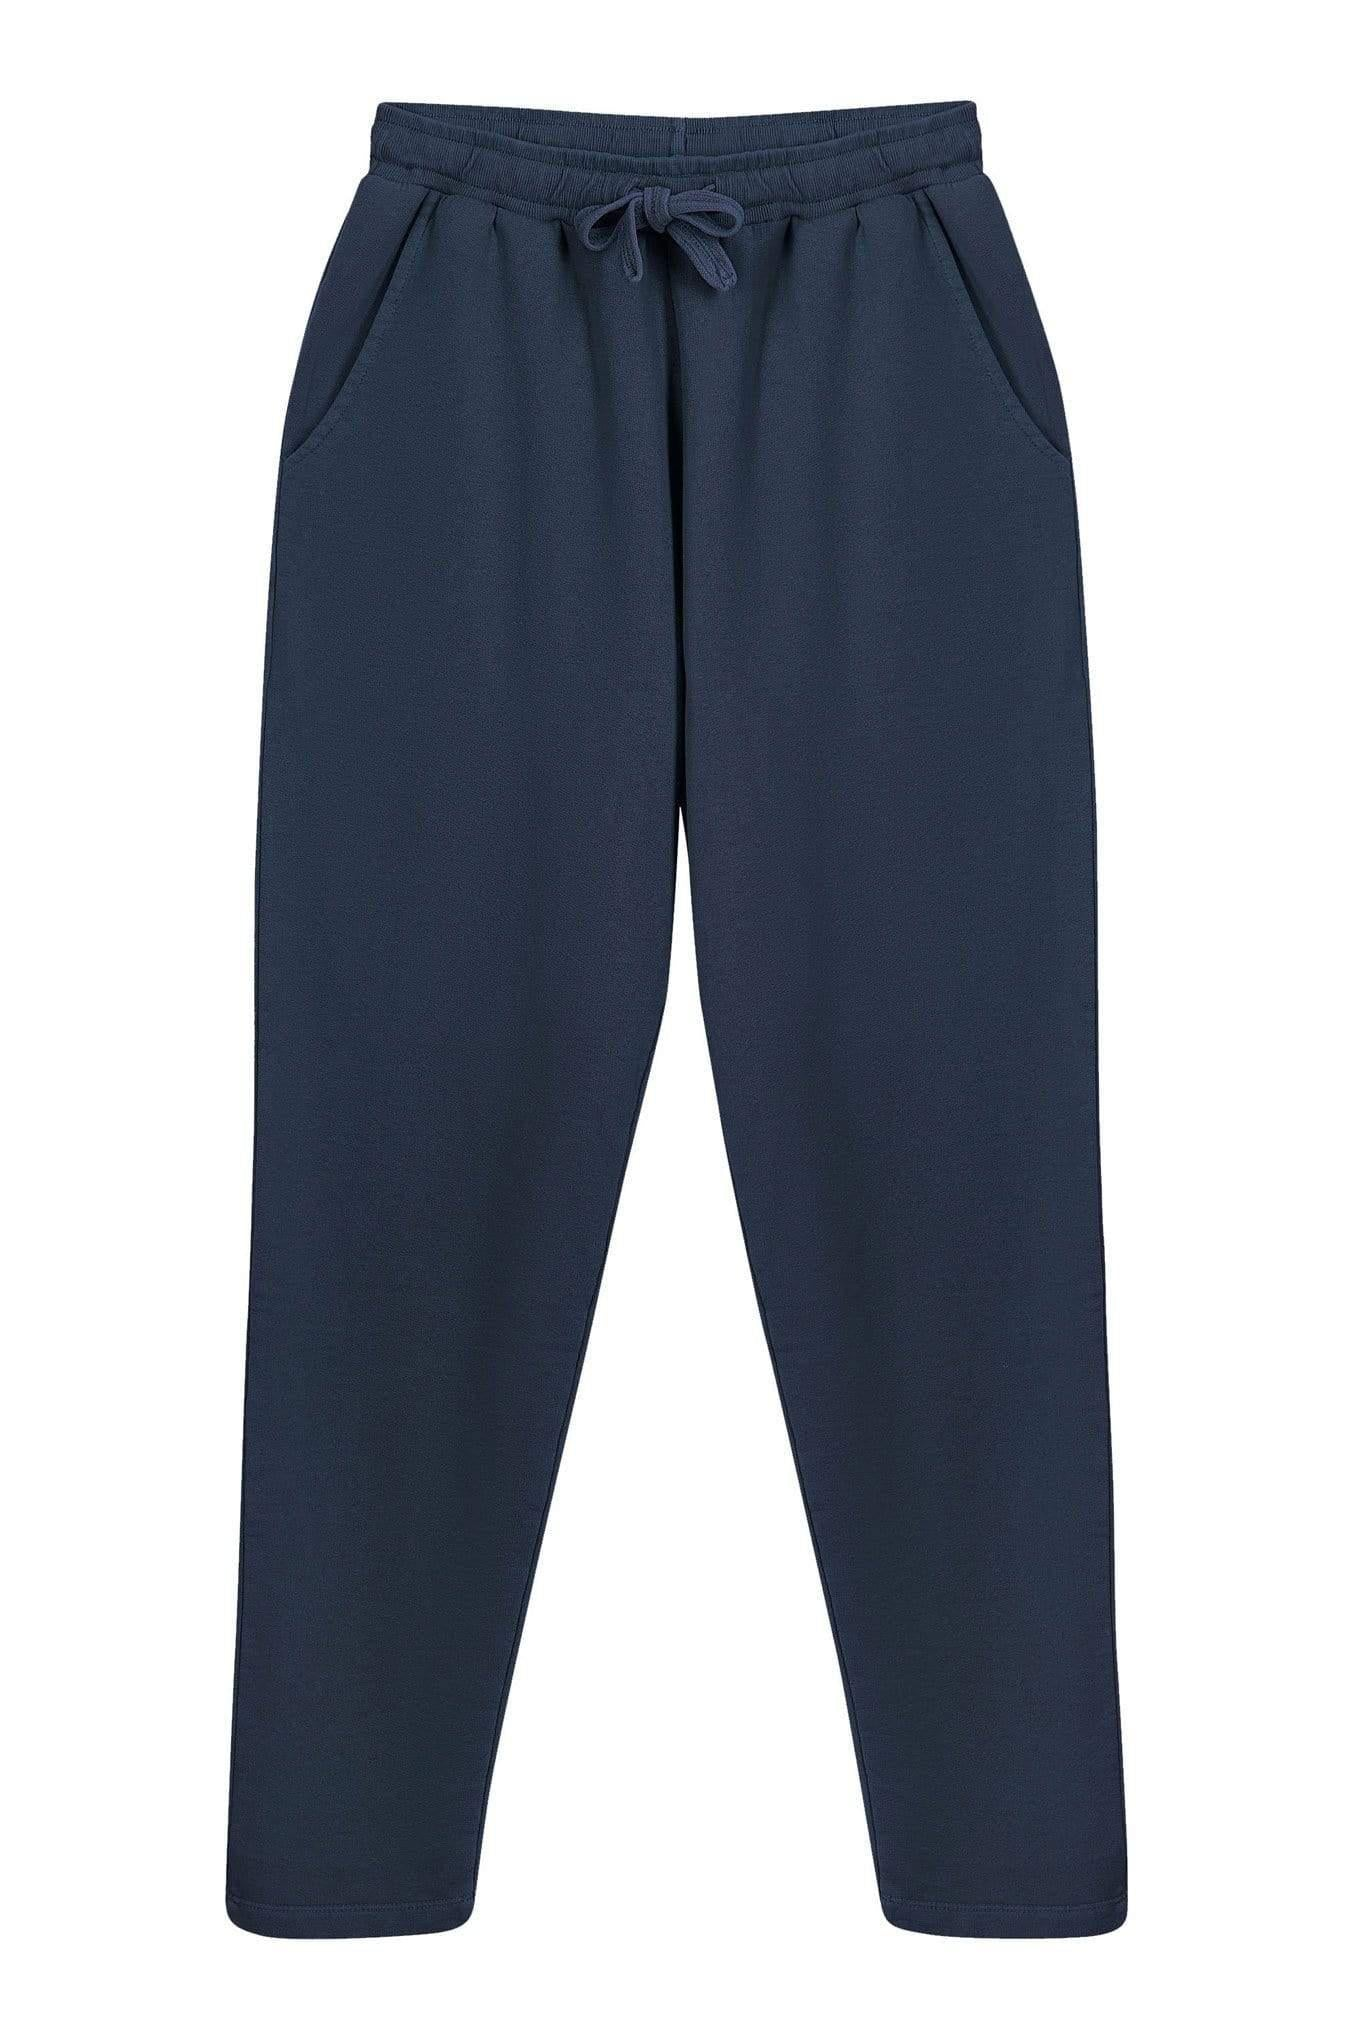 KOMODO Trousers OLYMPIA Mens - GOTS Organic Cotton Jogger Navy sustainable fashion ethical fashion